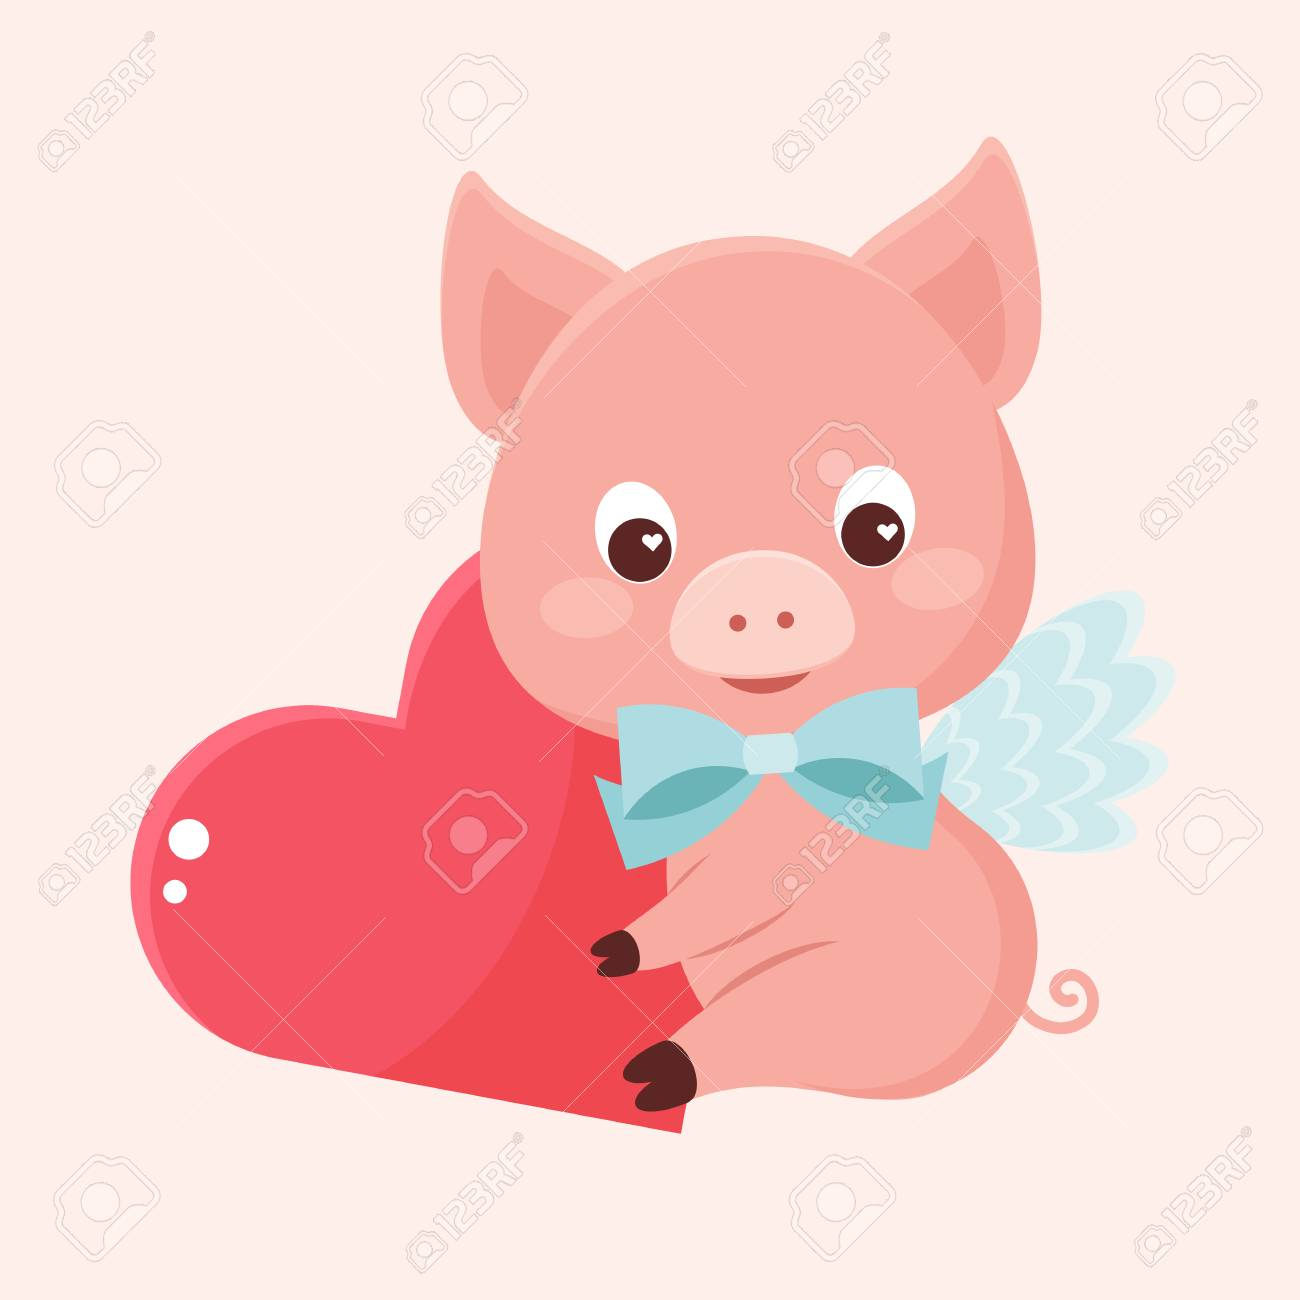 Angel Pig Holding Red Heart Card Poster Template For Valentines Day Vector Illustration